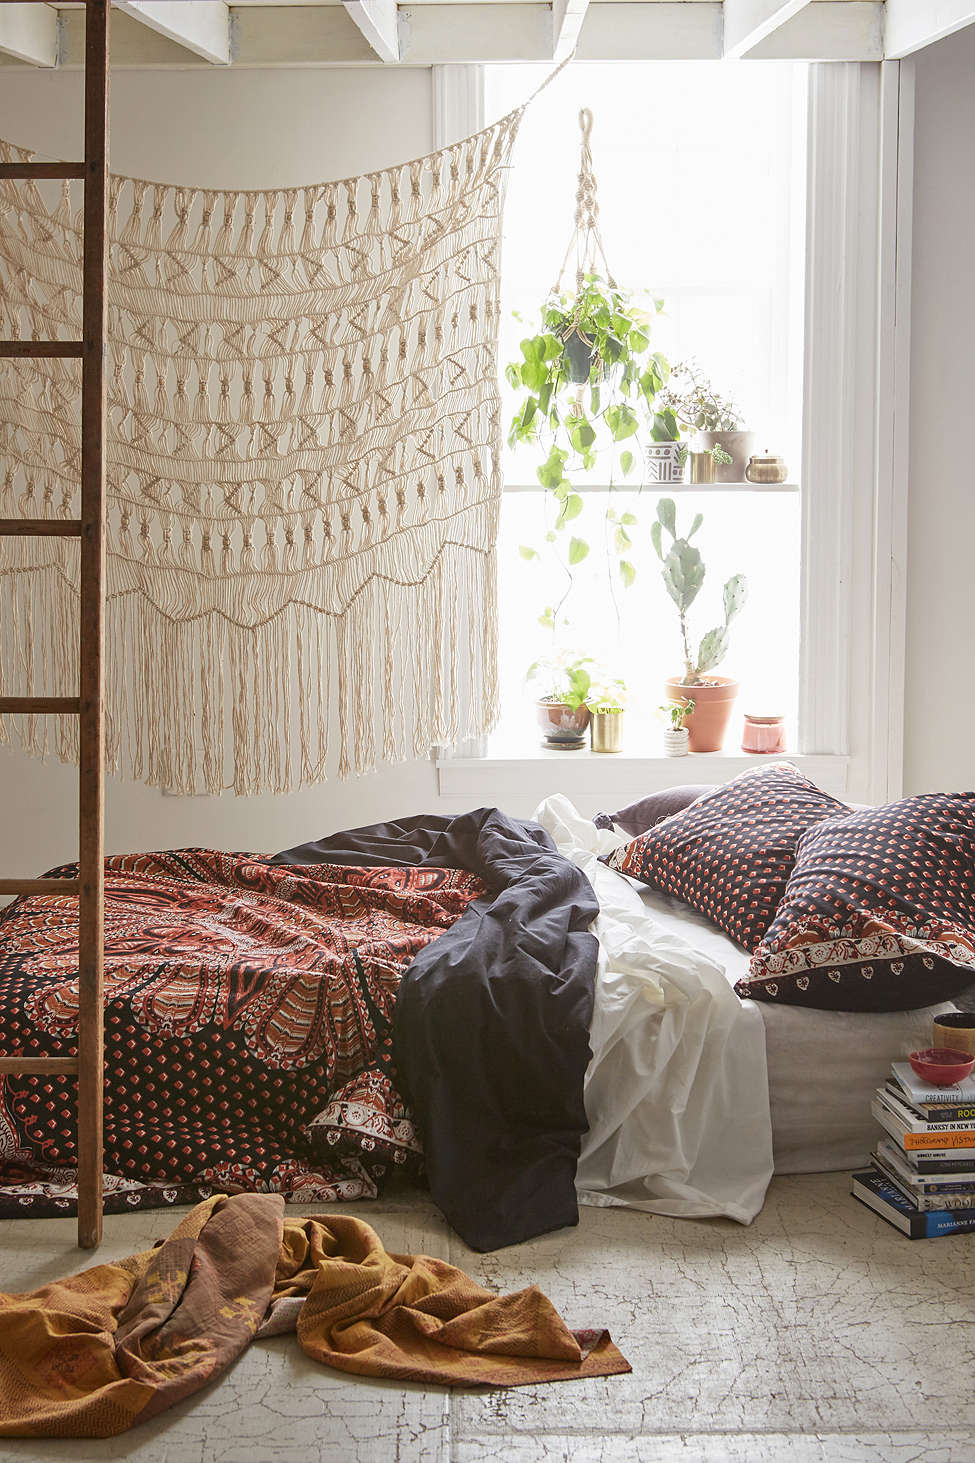 40 Bohemian Bedrooms To Fashion Your Eclectic Tastes After on Boho Bedroom  id=43159